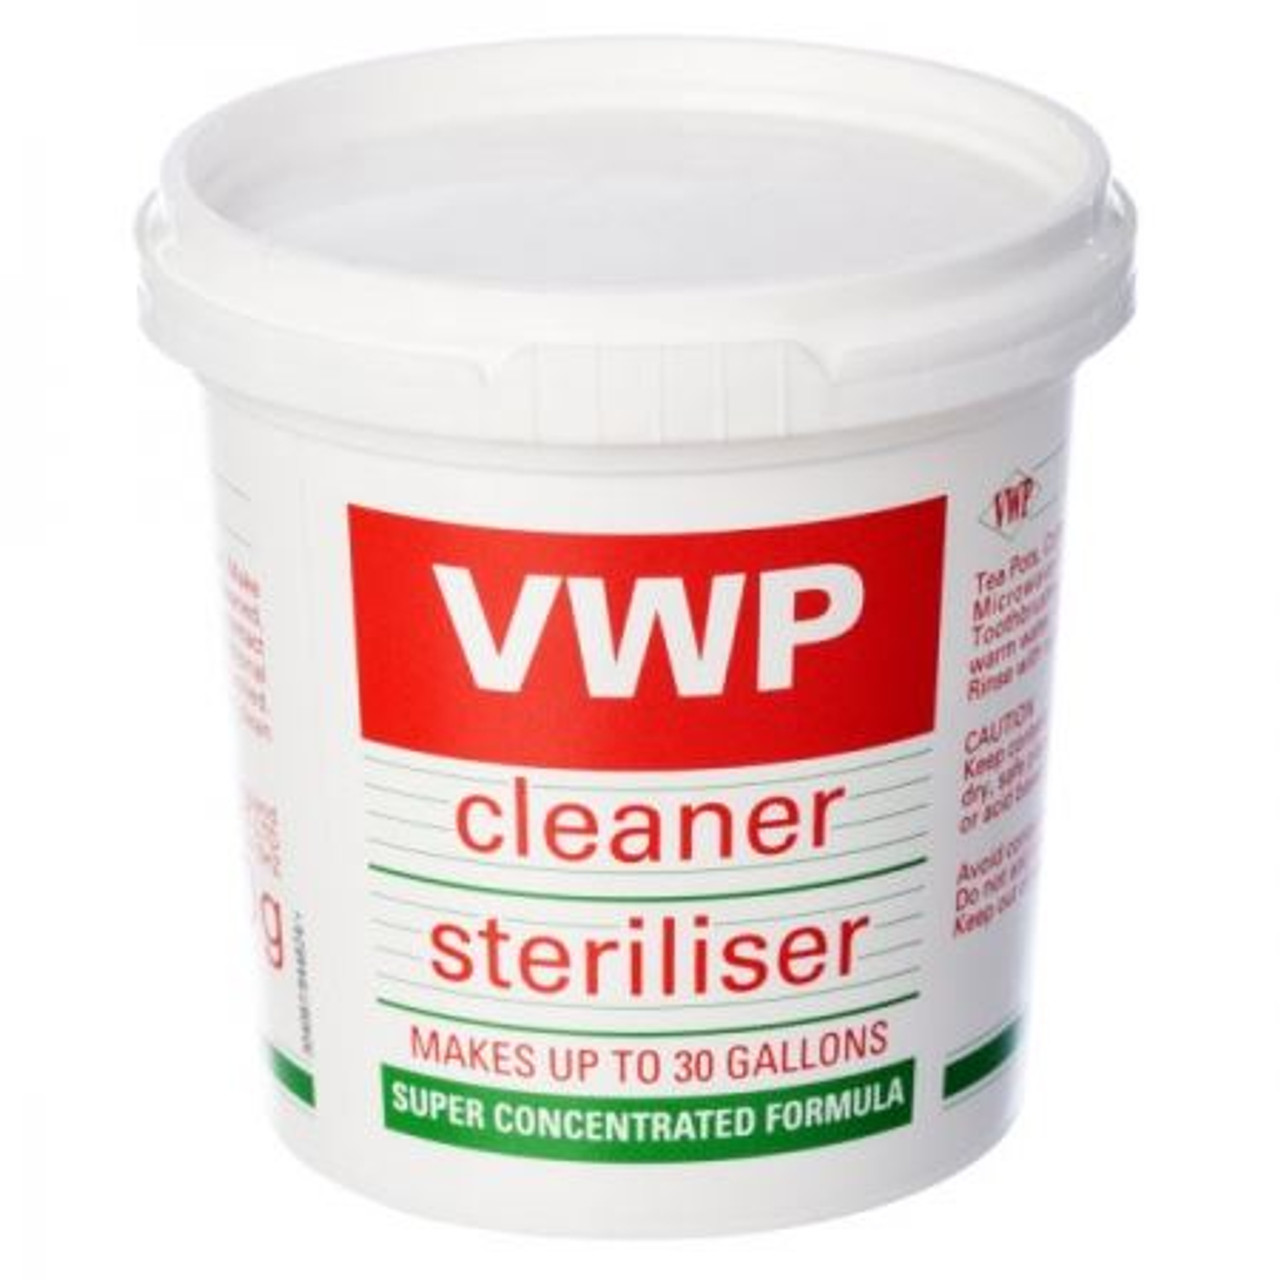 Youngs VWP Cleaner